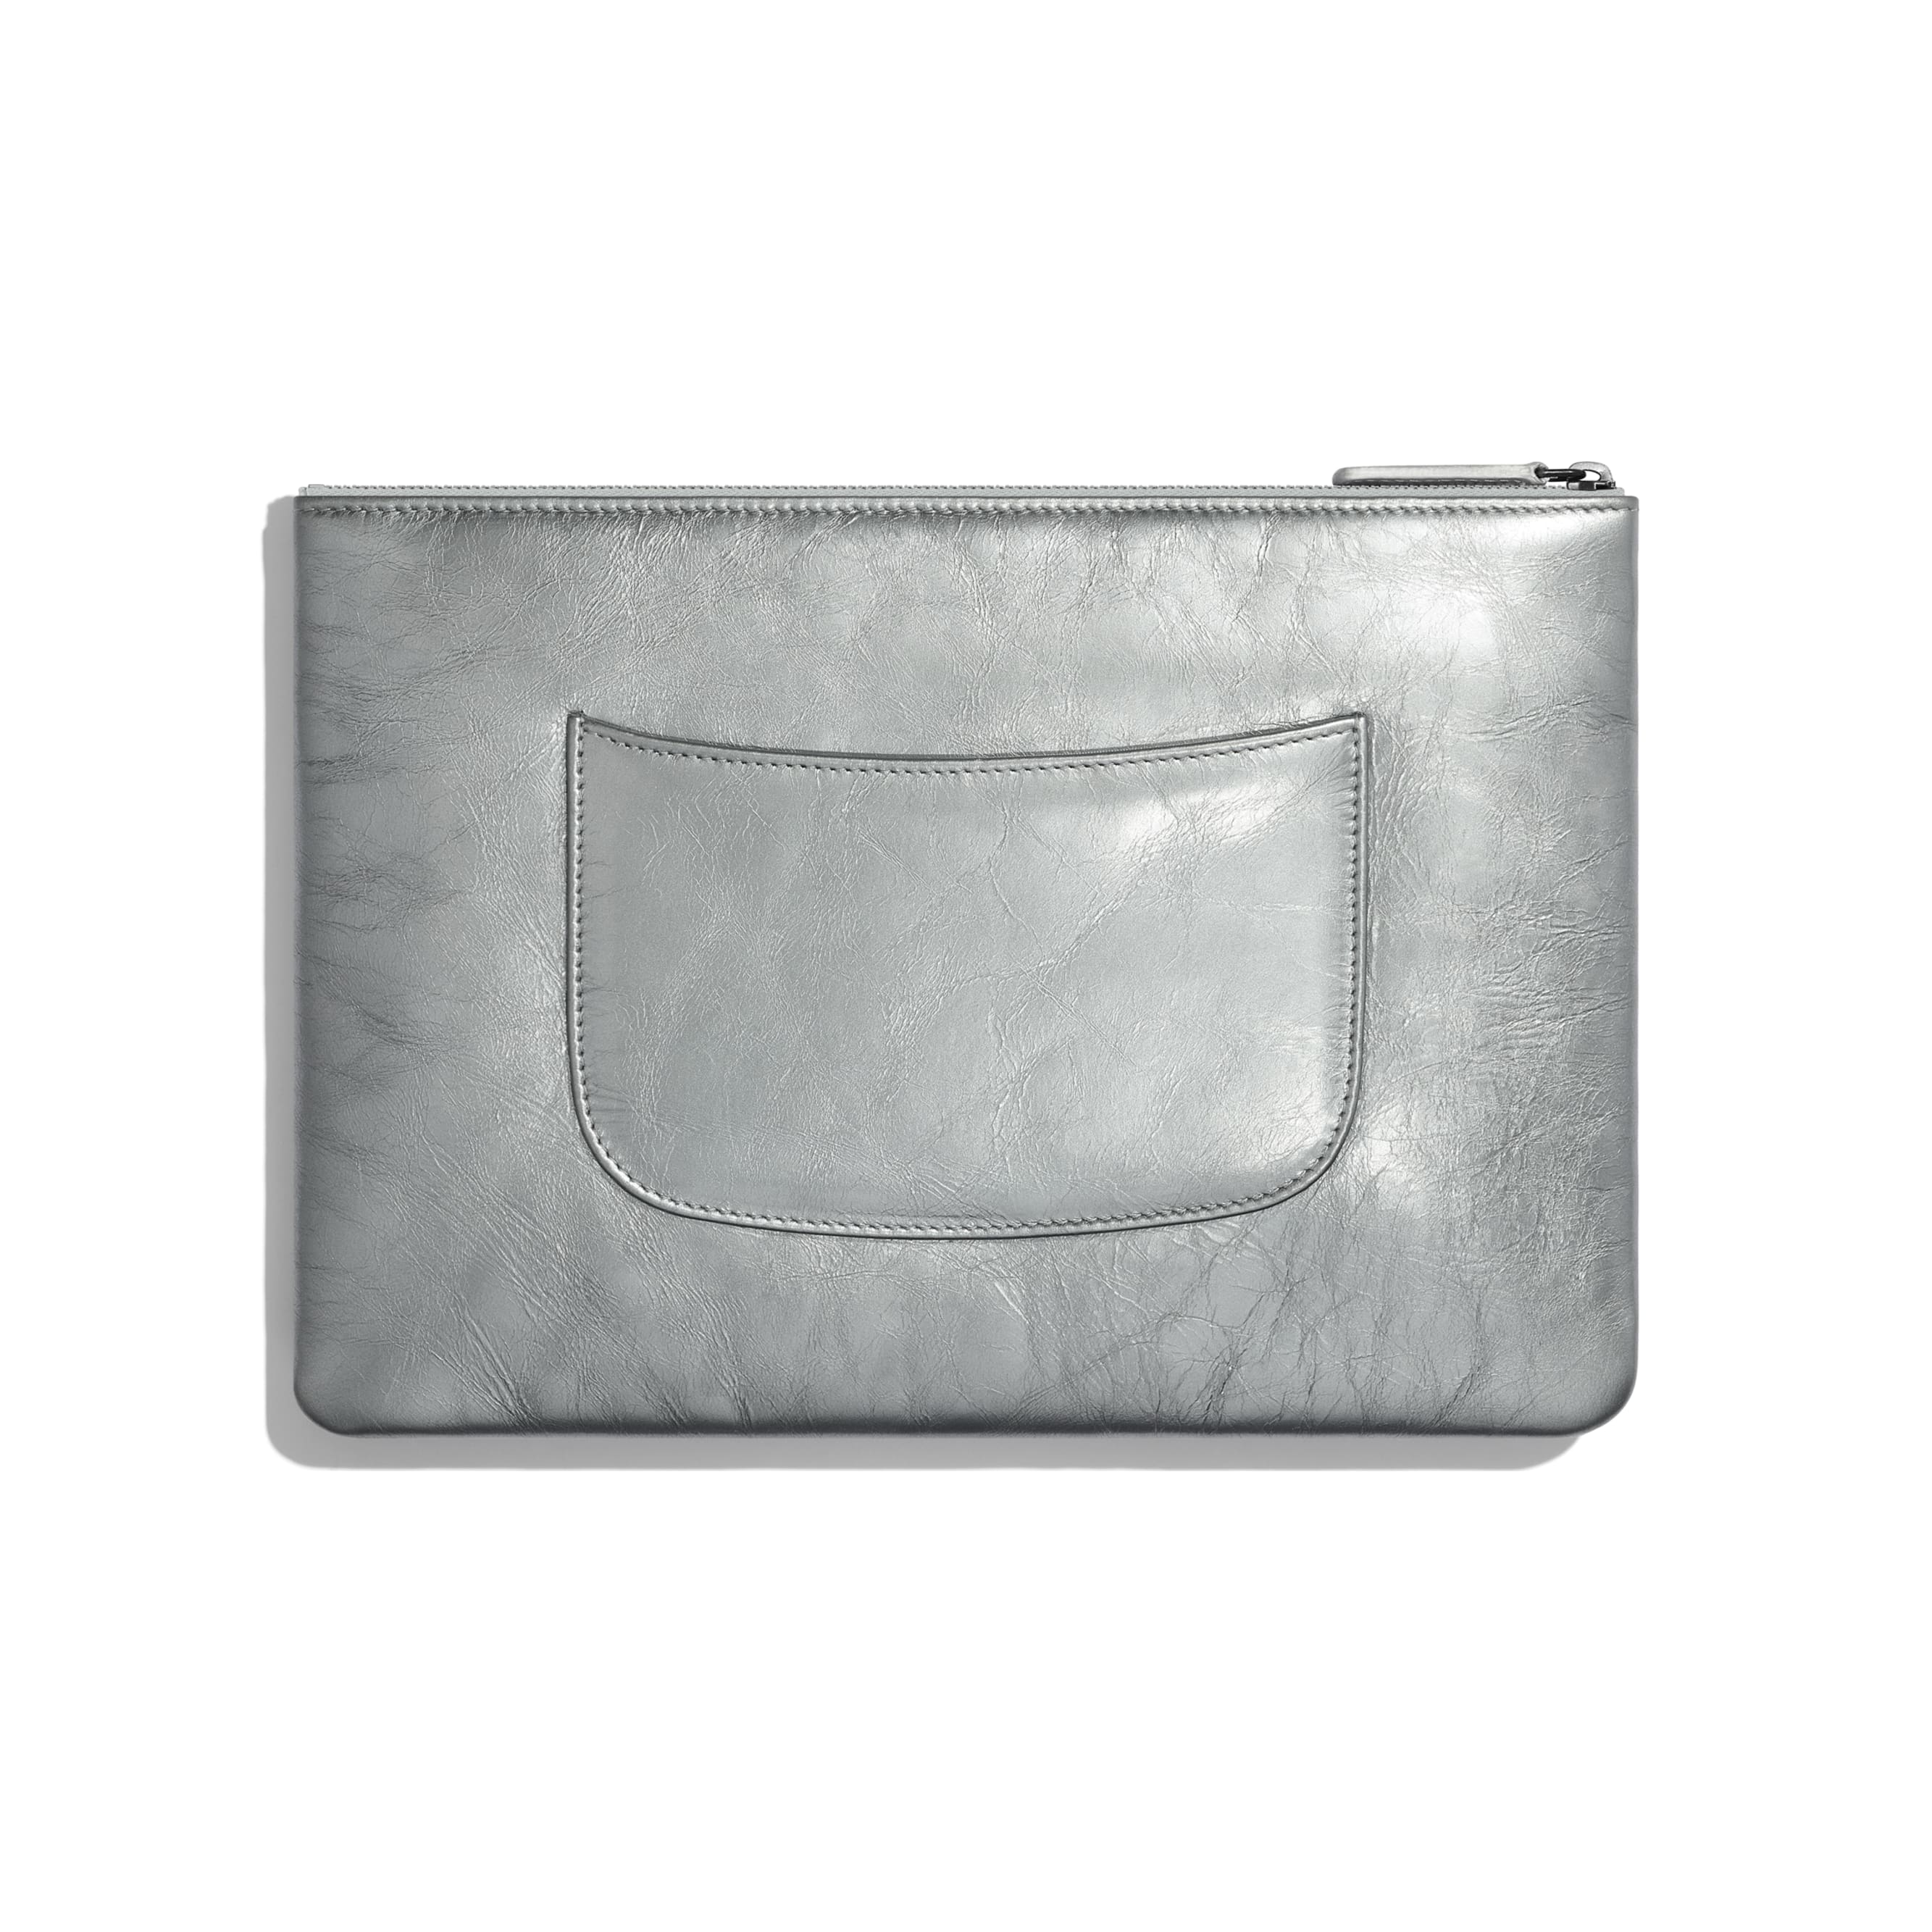 Pouch - Silver - Metallic Crumpled Calfskin, Gold-Tone, Silver-Tone & Ruthenium-Finish Metal - CHANEL - Alternative view - see standard sized version